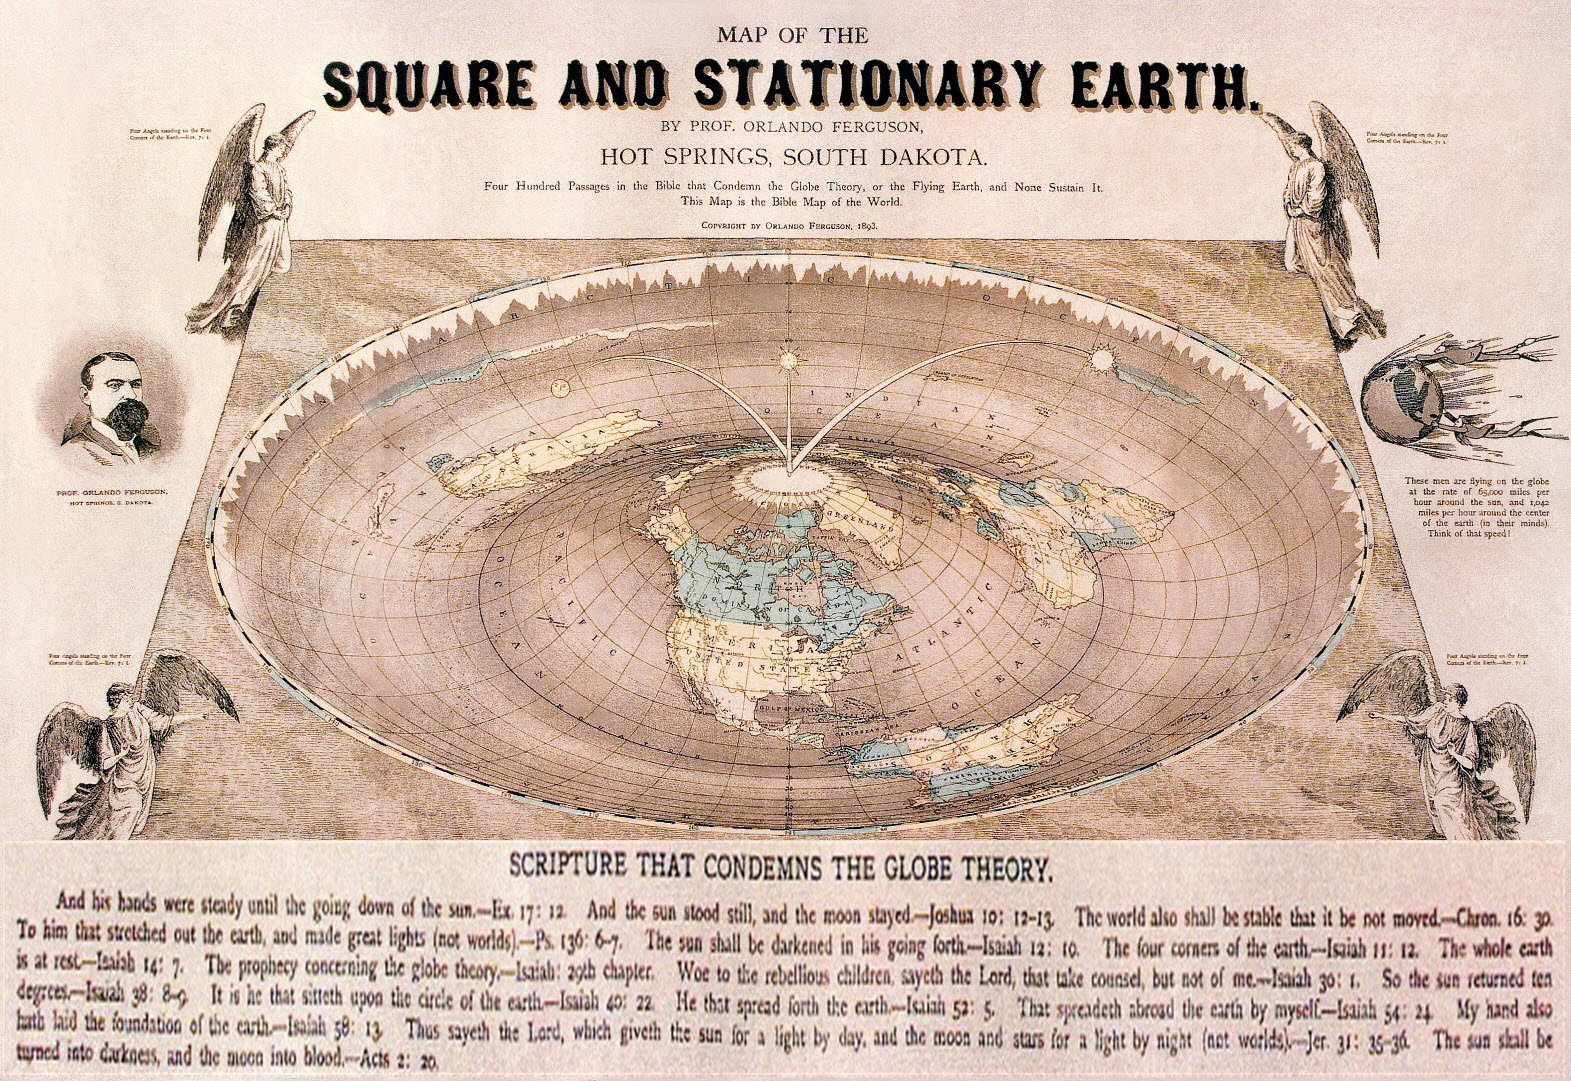 FlatEarth map with Scripture that condemns the globe theory